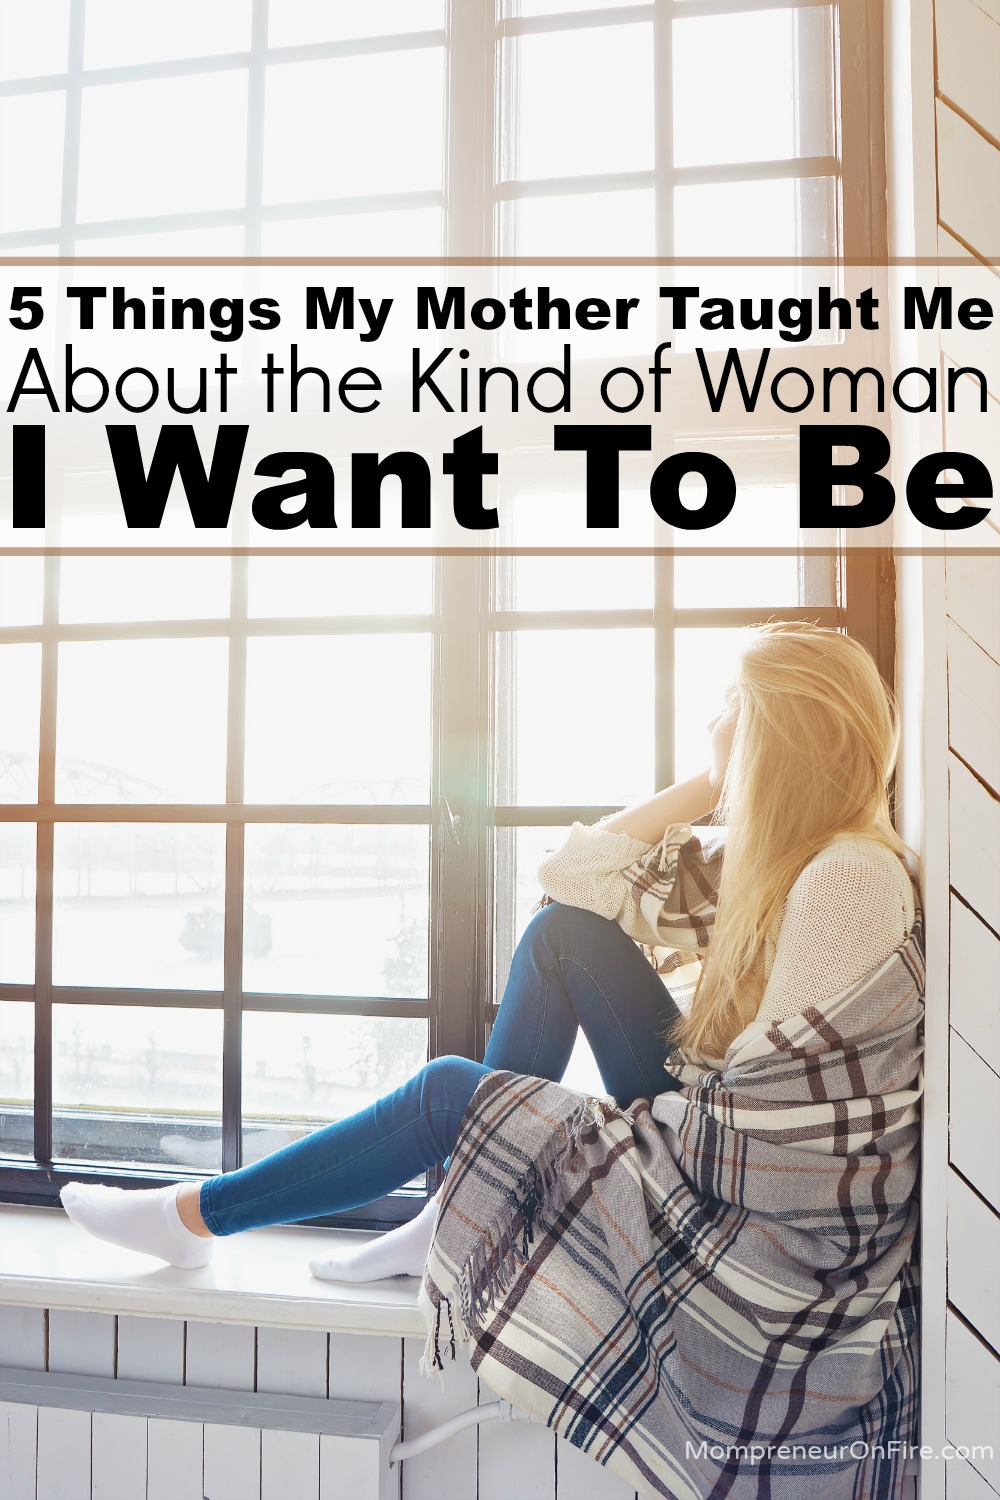 Mompreneur on Fire - 5 Things My Mother Taught Me